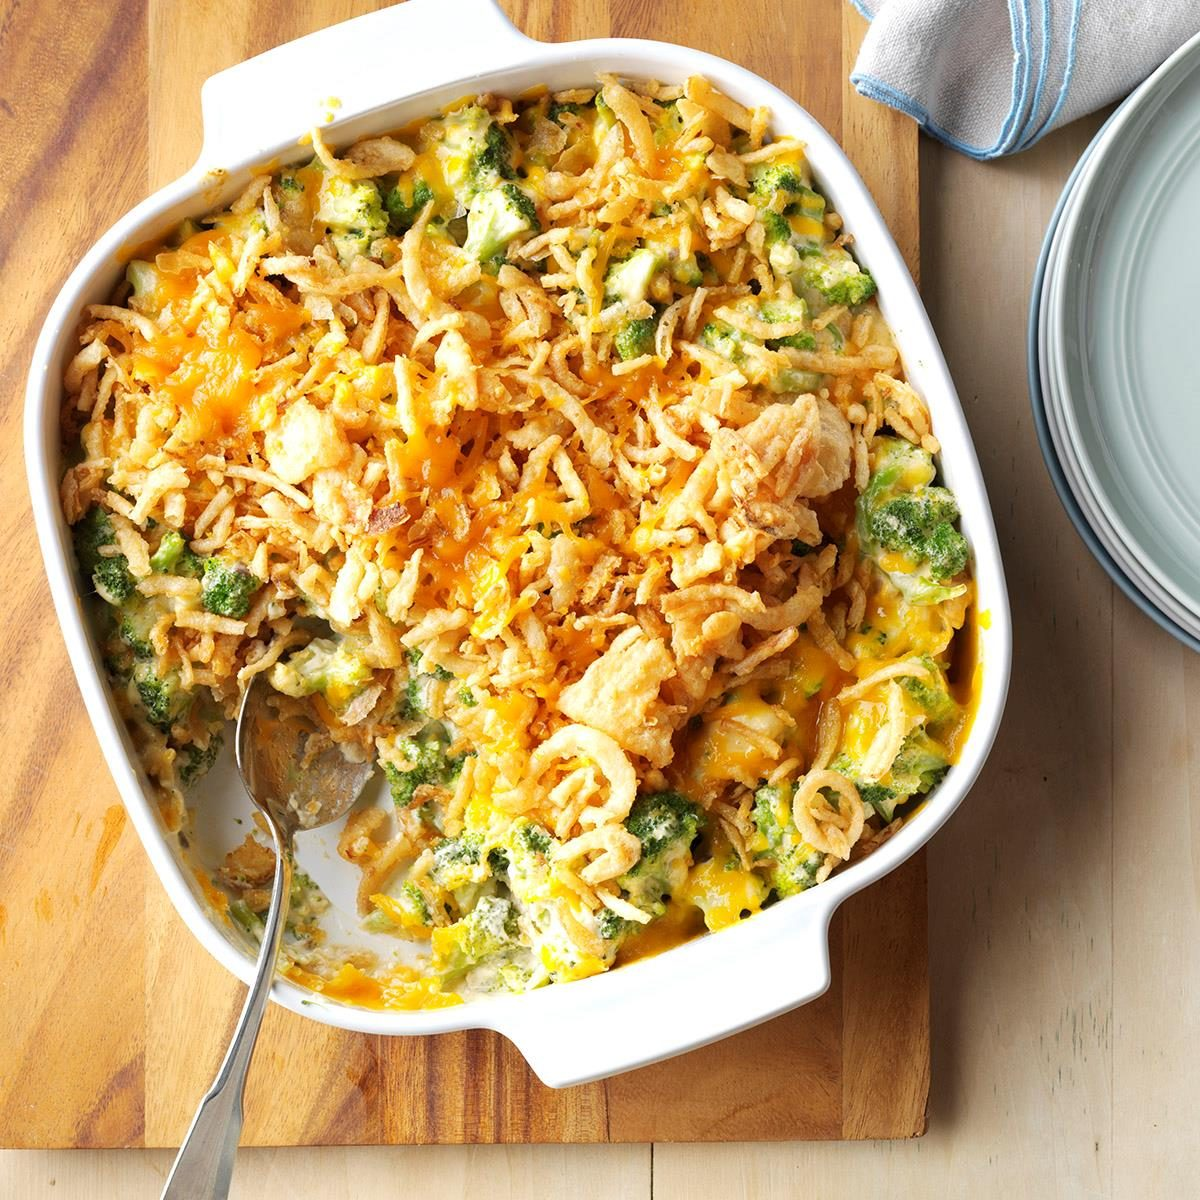 Broccoli And Cauliflower Casserole With Chicken